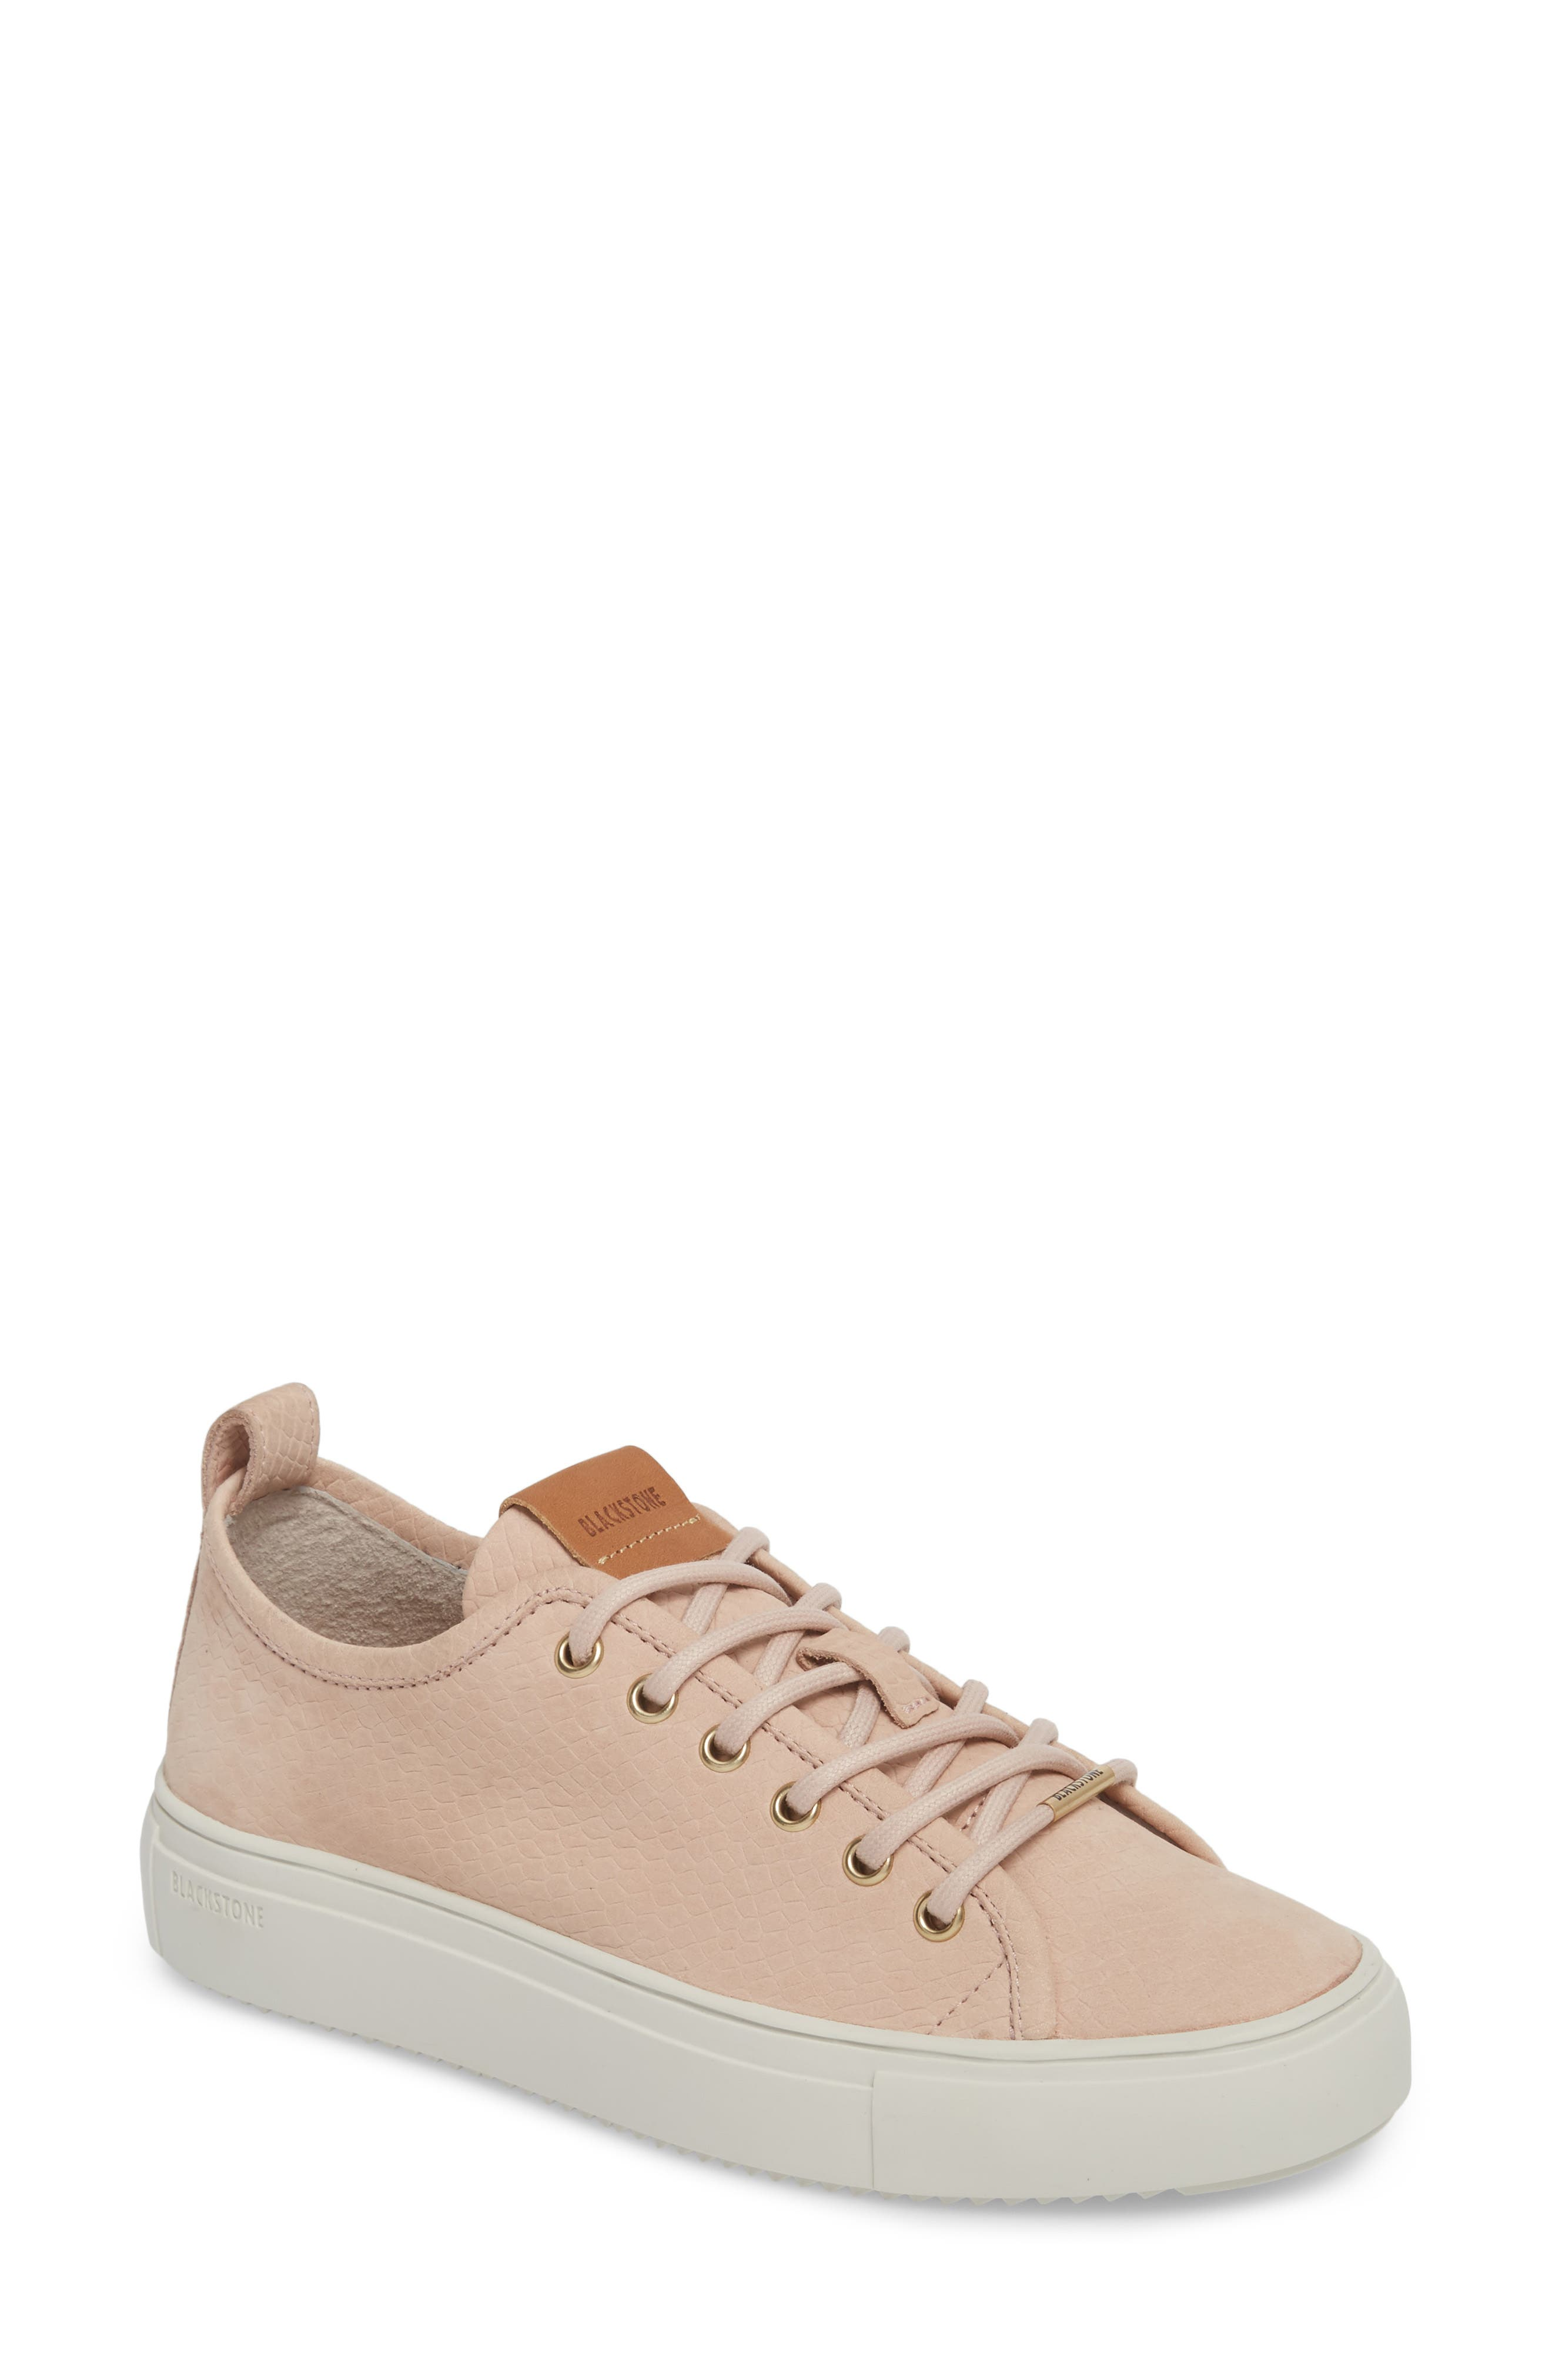 PL90 Sneaker,                         Main,                         color, Rose Dust Leather